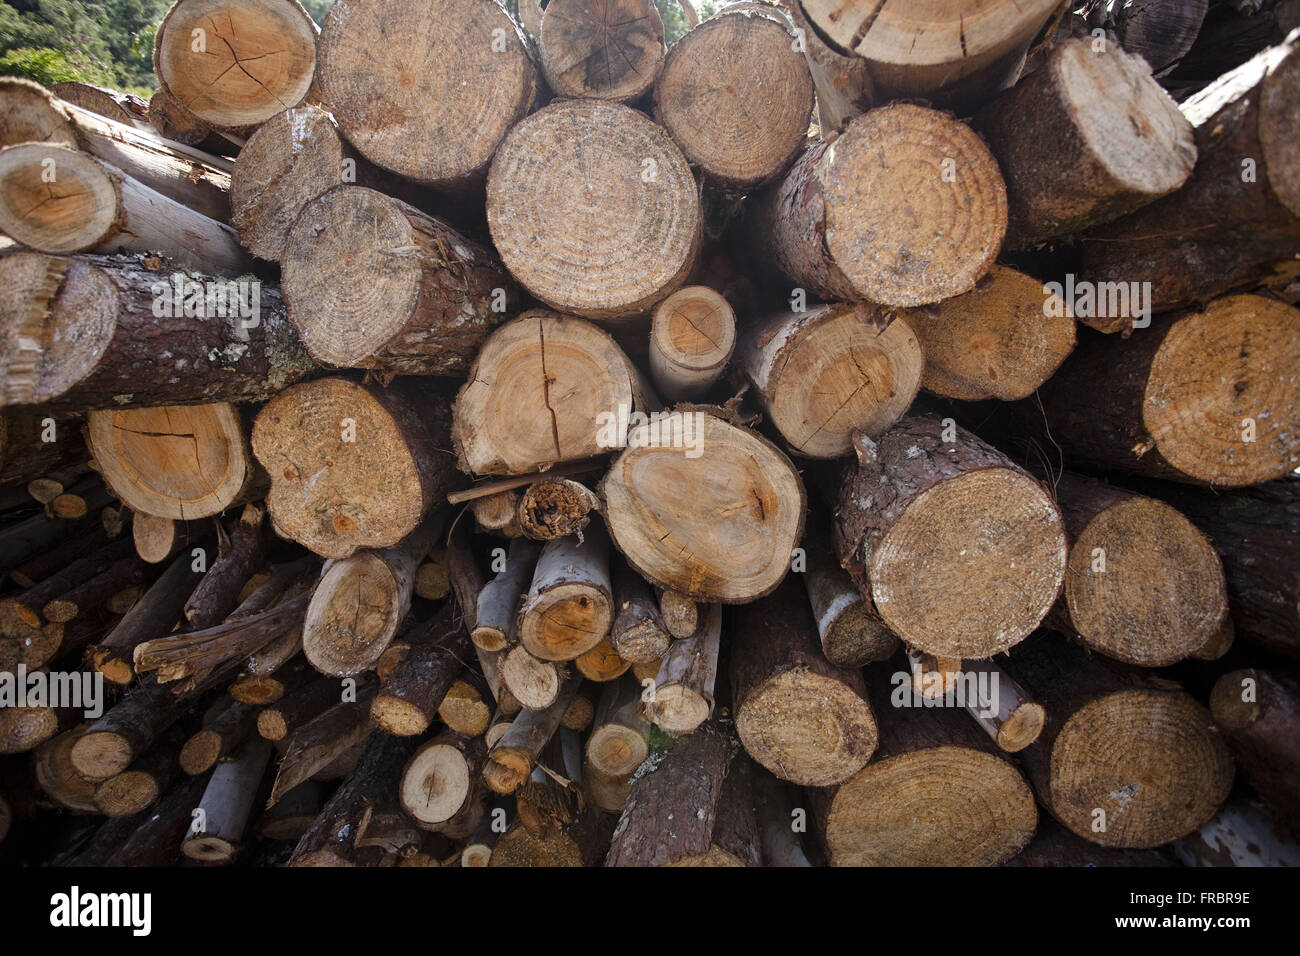 Logs of firewood stacked - Stock Image